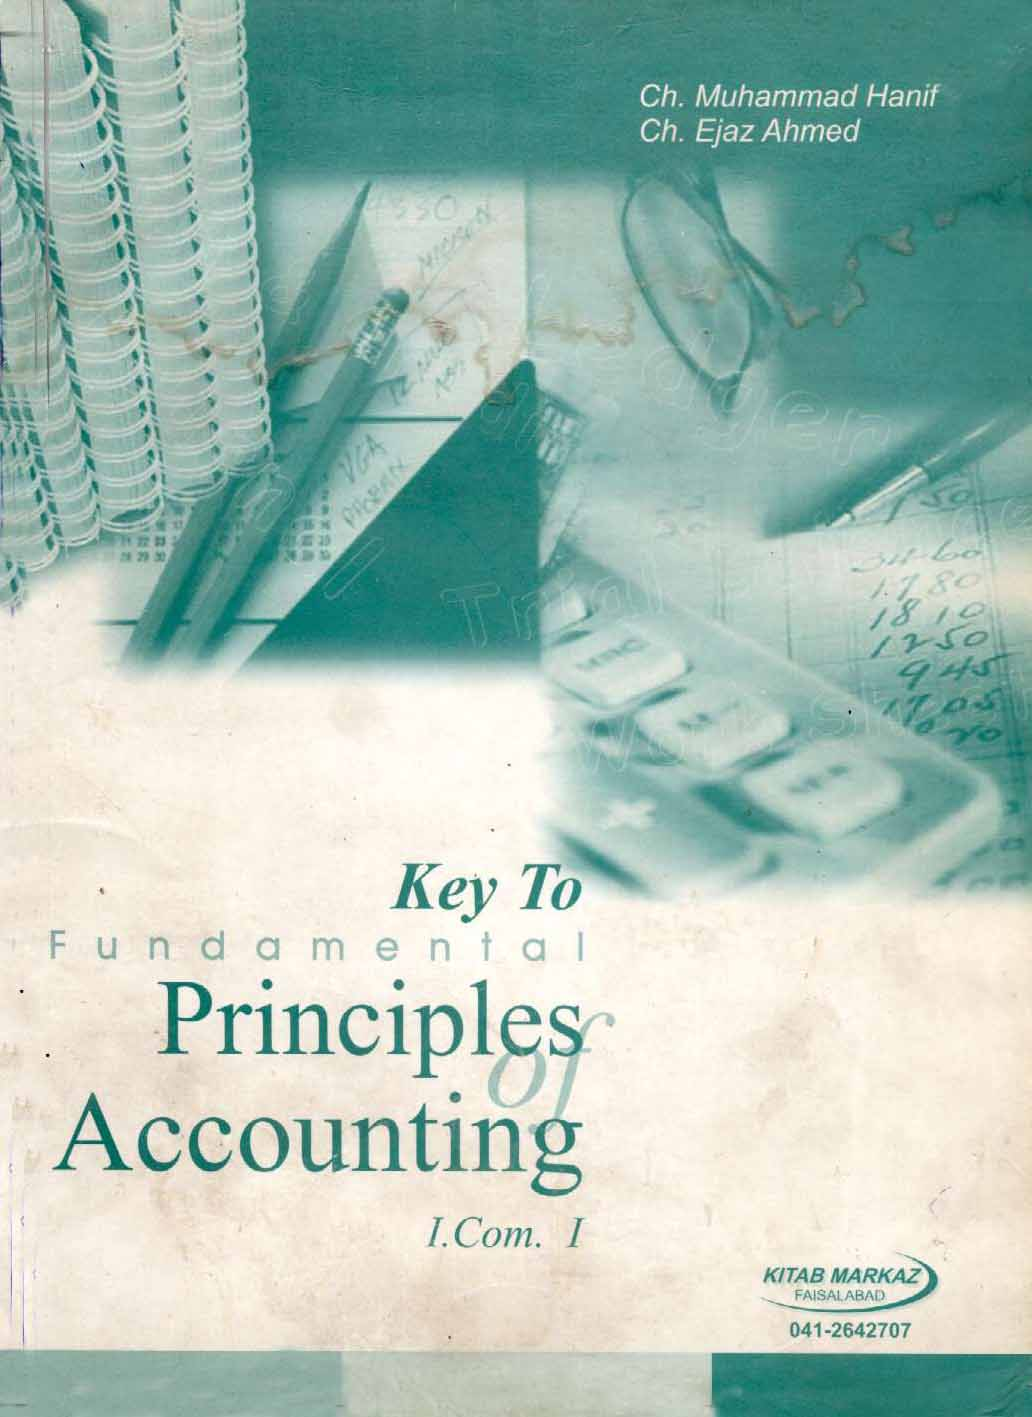 rinciples of Accounting I.Com